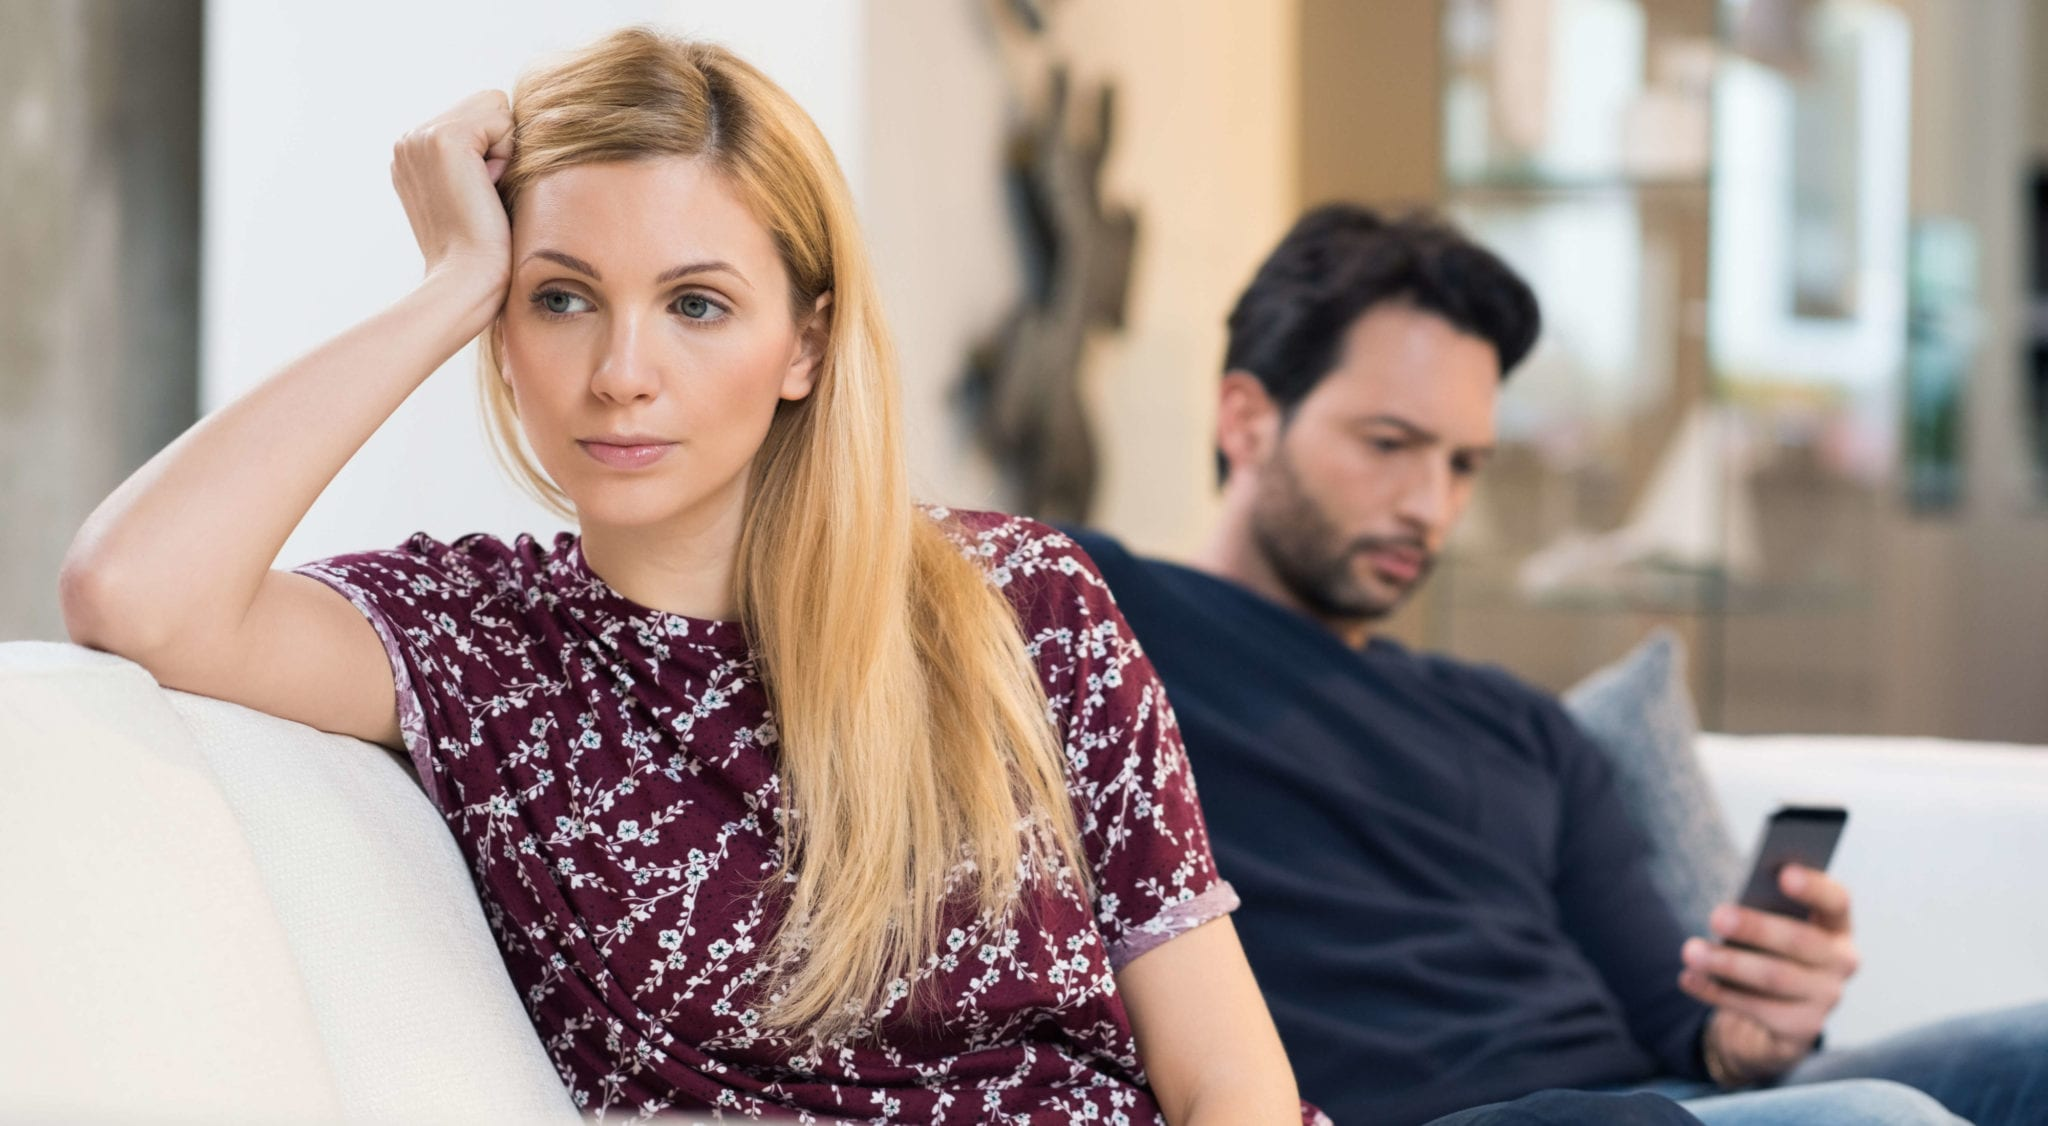 Couple sitting on couch looking unhappy